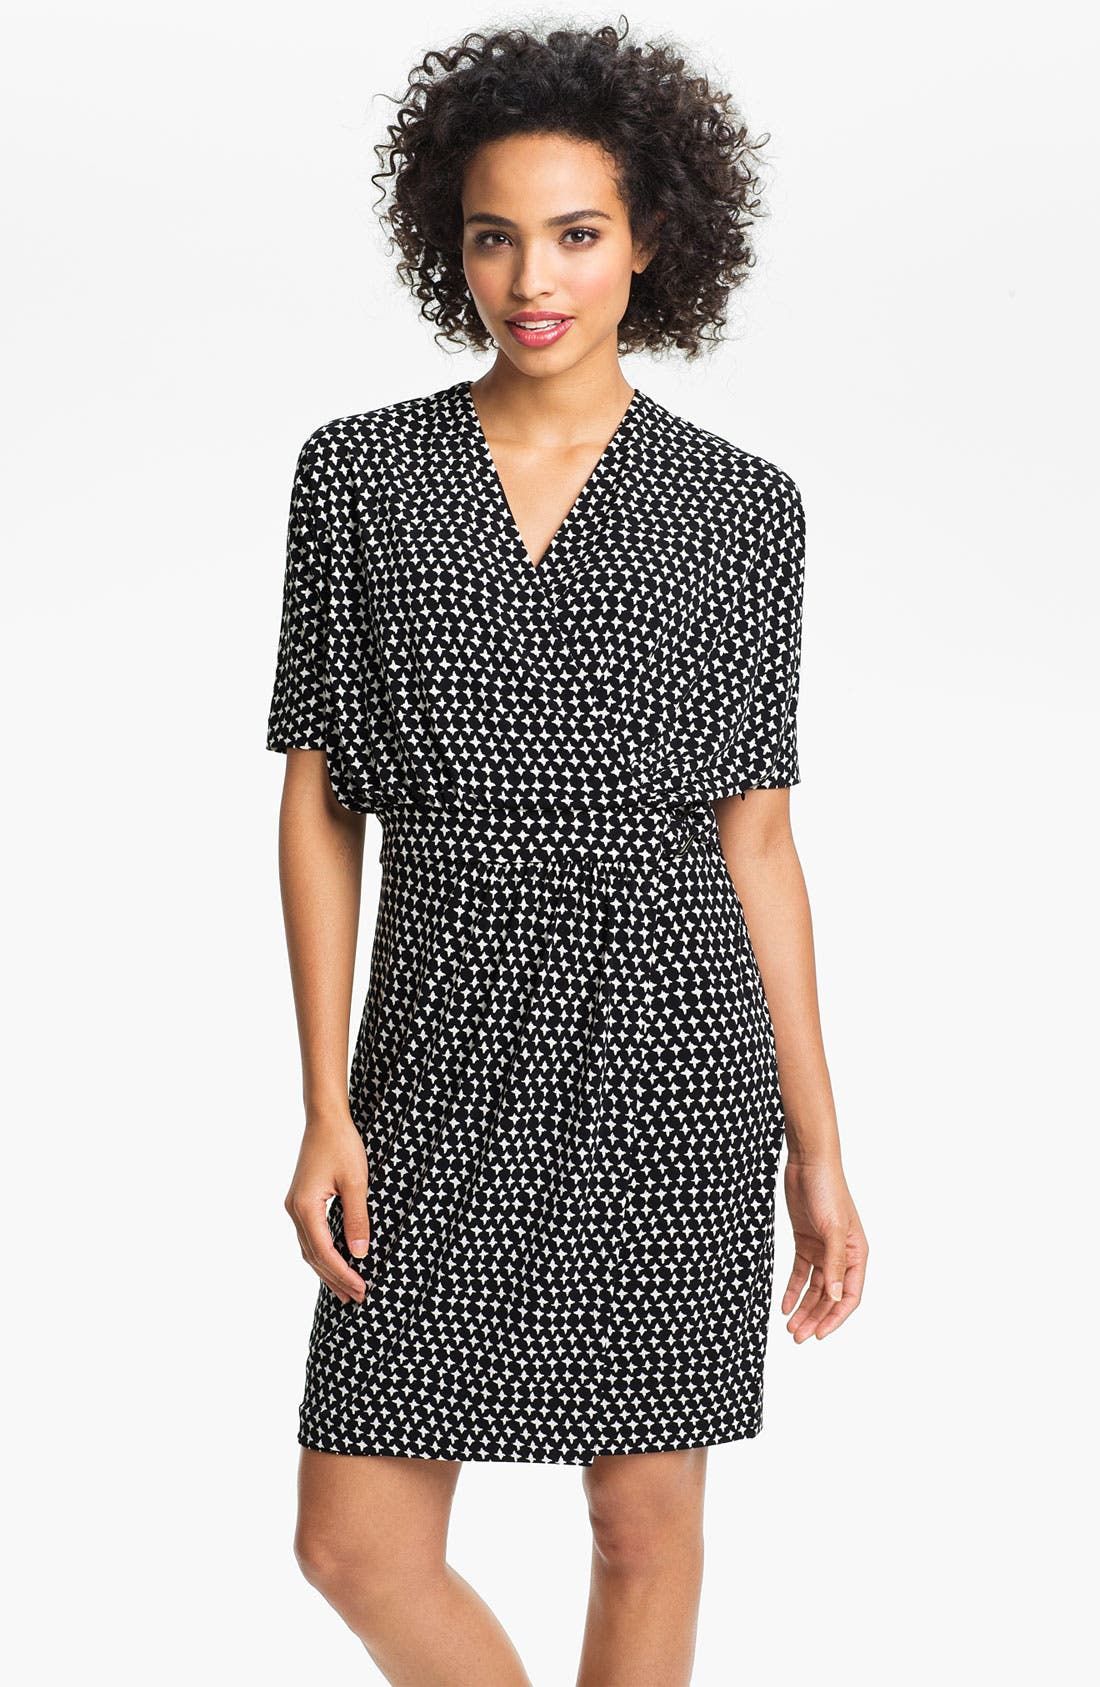 Alternate Image 1 Selected - Vince Camuto Star Print Faux Wrap Dress